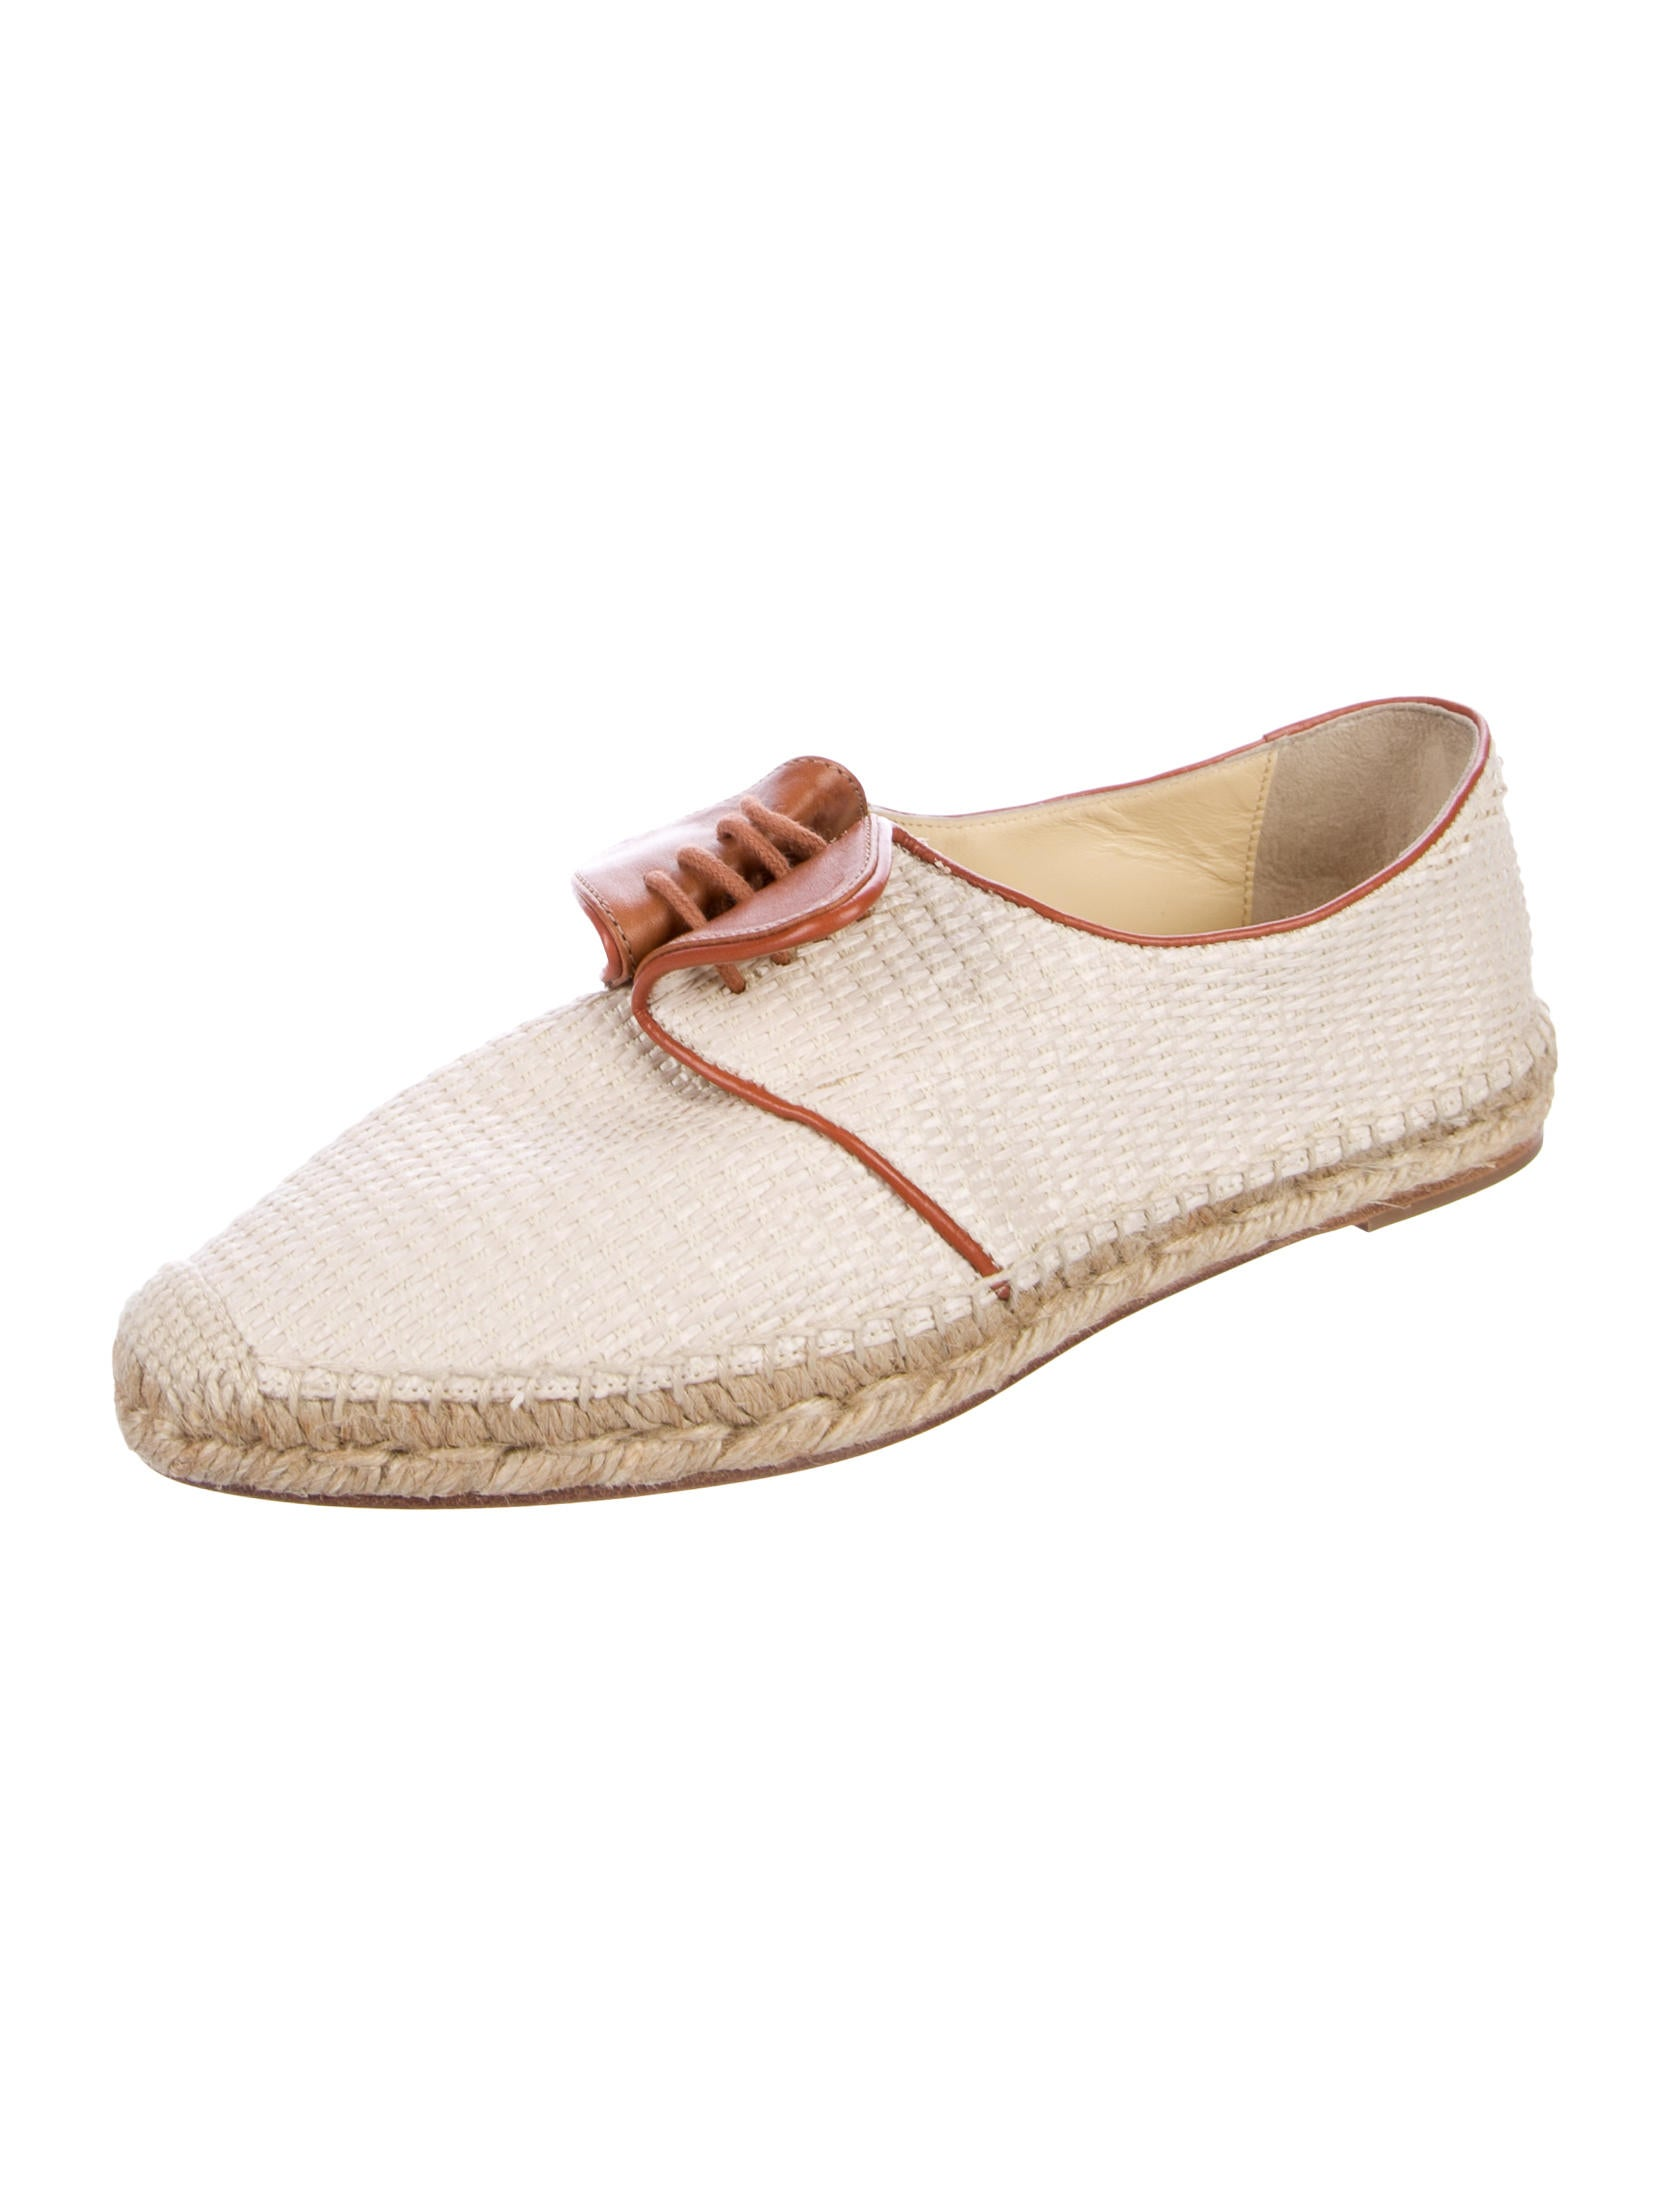 Sarah Flint Elena Raffia Espadrilles w/ Tags from china online free shipping pay with visa discount how much uUXPuvL